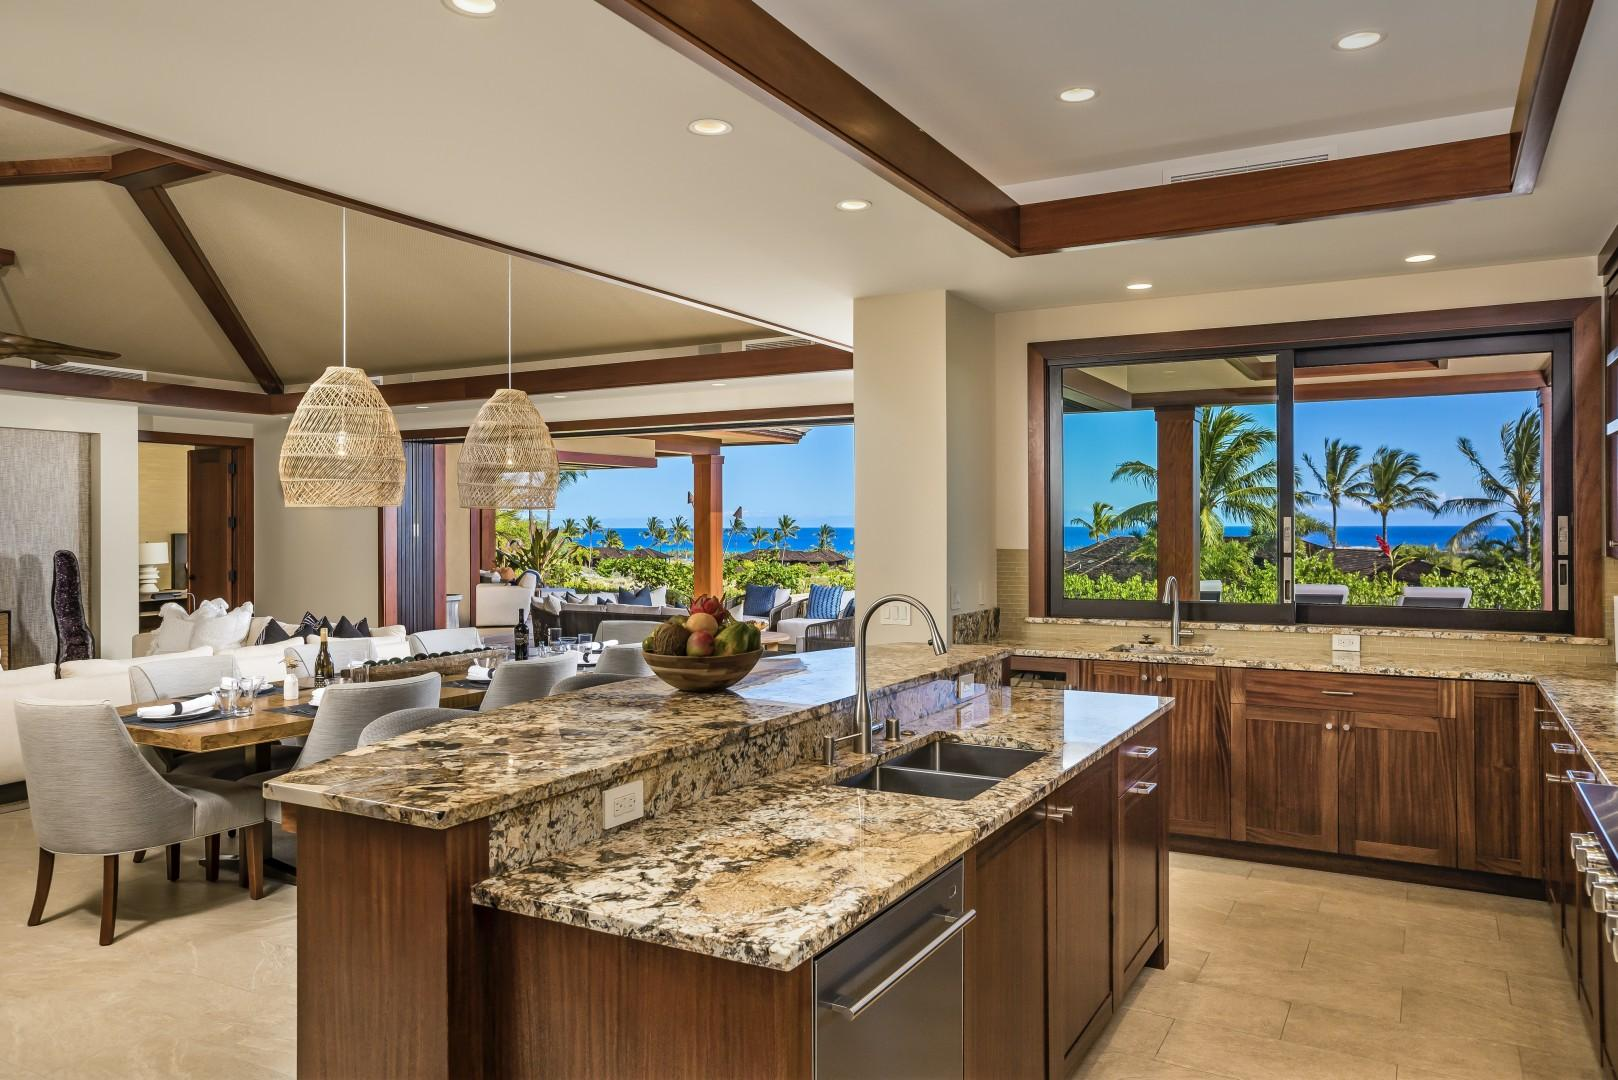 Stunning open concept kitchen with granite countertops, top tier appliances, two sinks, custom African mahogany cabinetry and a large pass through window to the outdoor BBQ area.